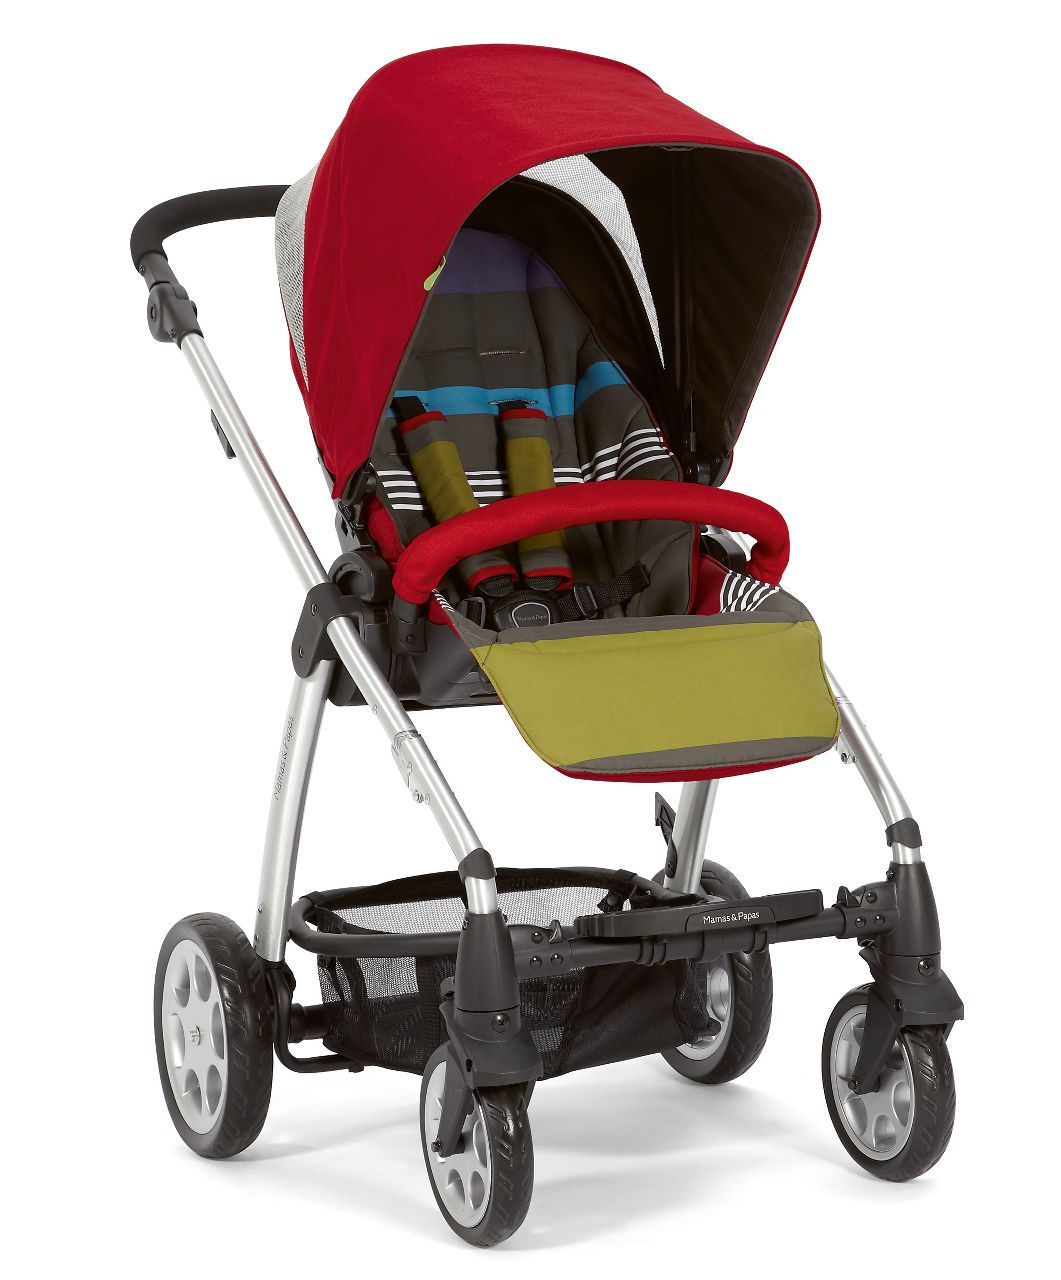 Sola Pushchair 2 in 1 Red Prams Mamas & Papas Baby